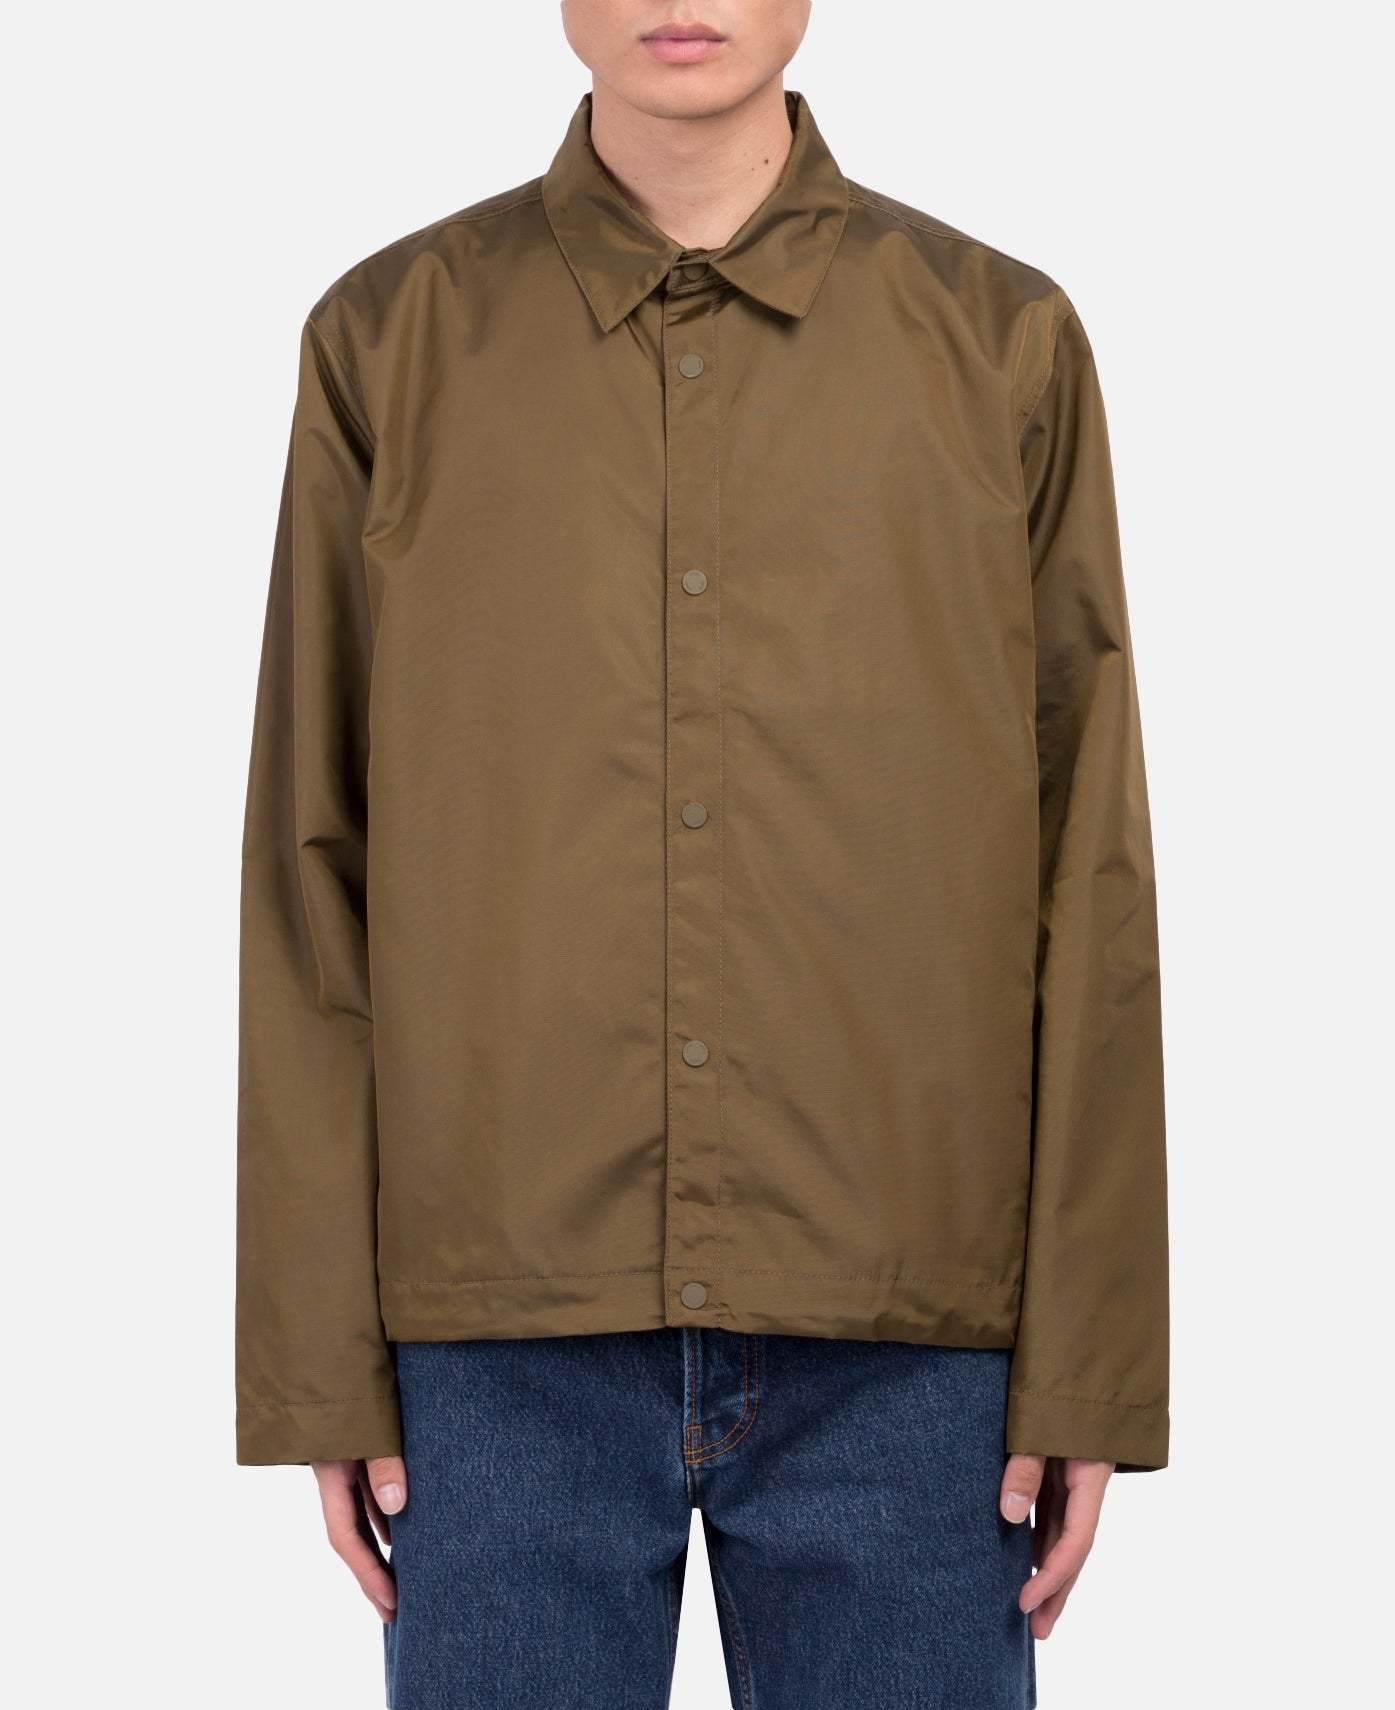 Svend Nylon Oxford Jacket (Sitka Green)